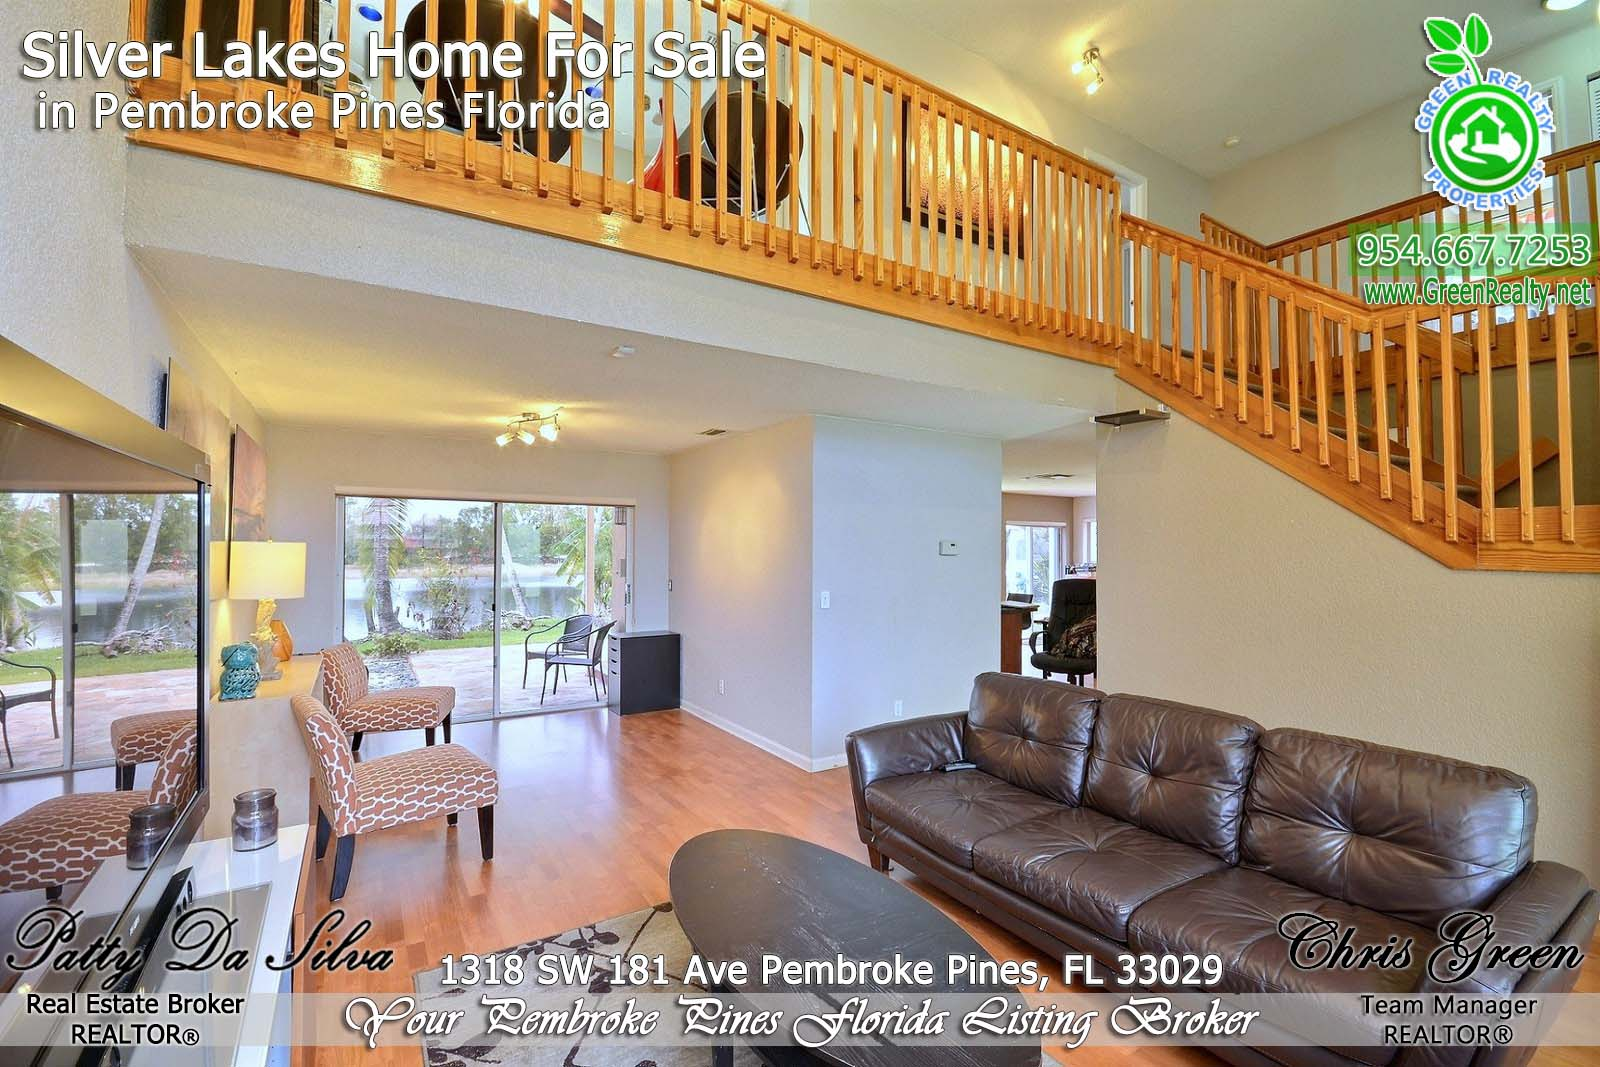 5 Silver Lakes Homes For Sale (1)